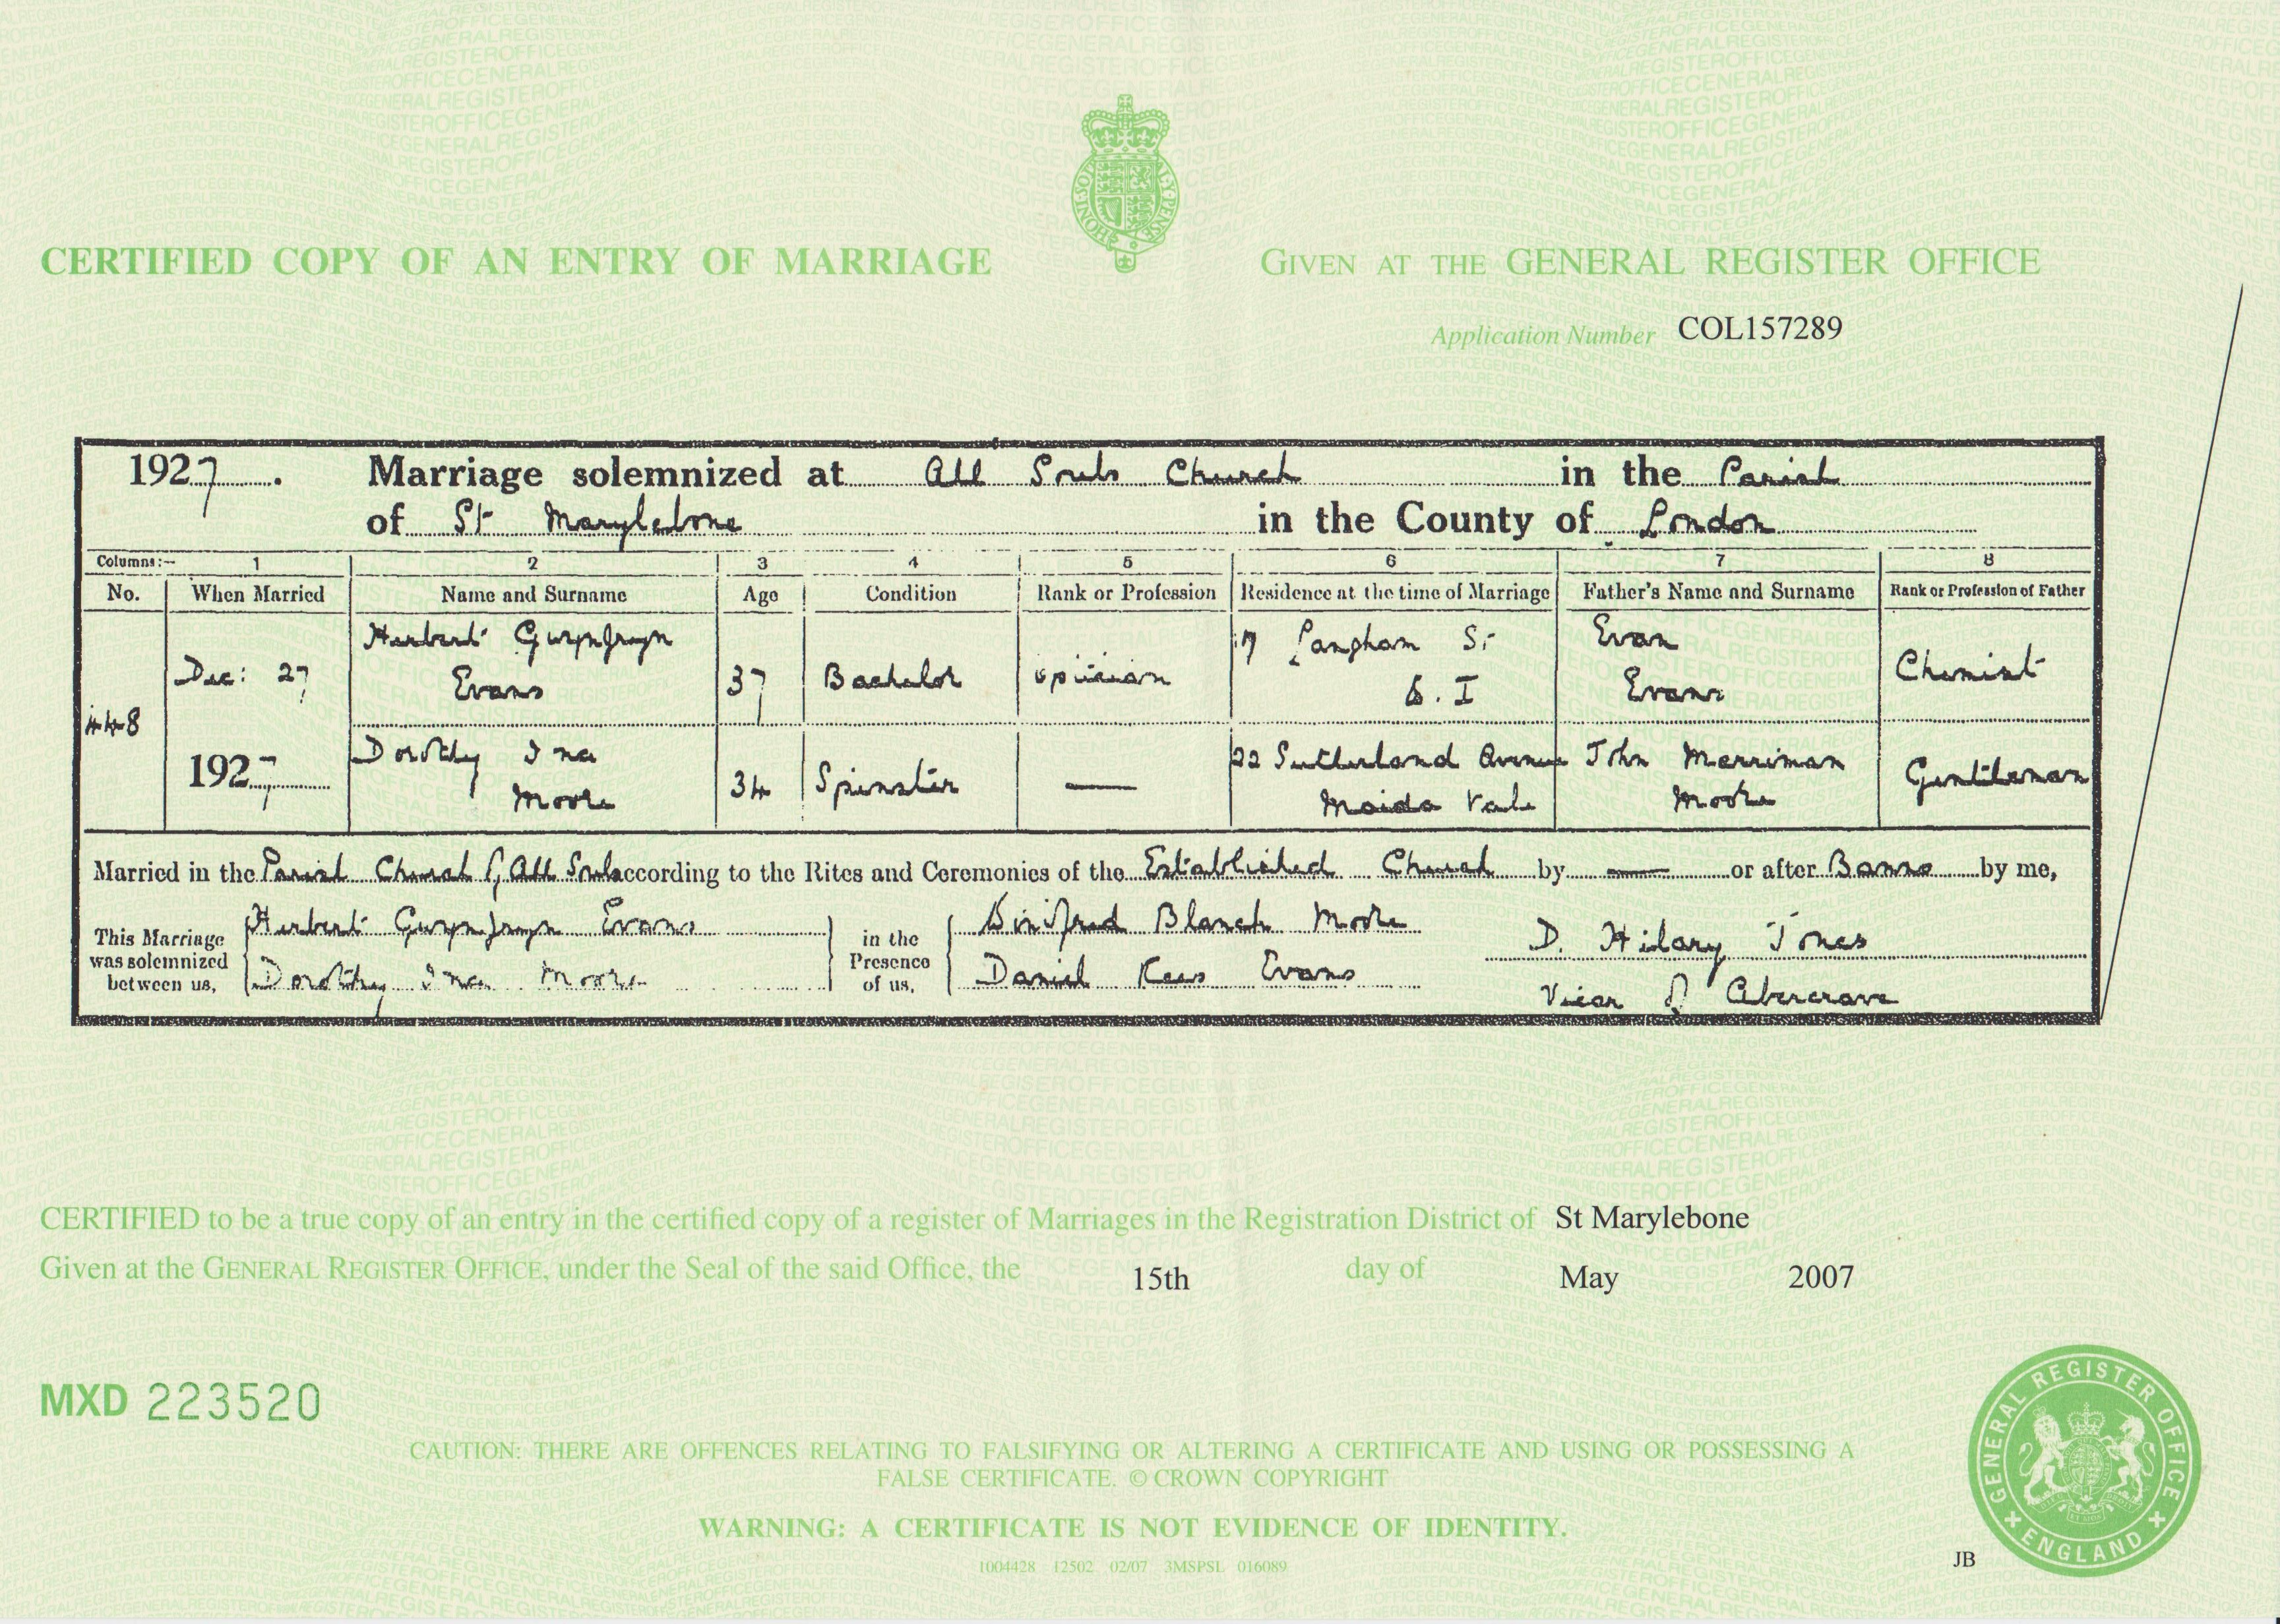 Certified copy of an entry of marriage herbert gwynfryn evans dorothy ina moore 1927 marriage certificate xflitez Gallery